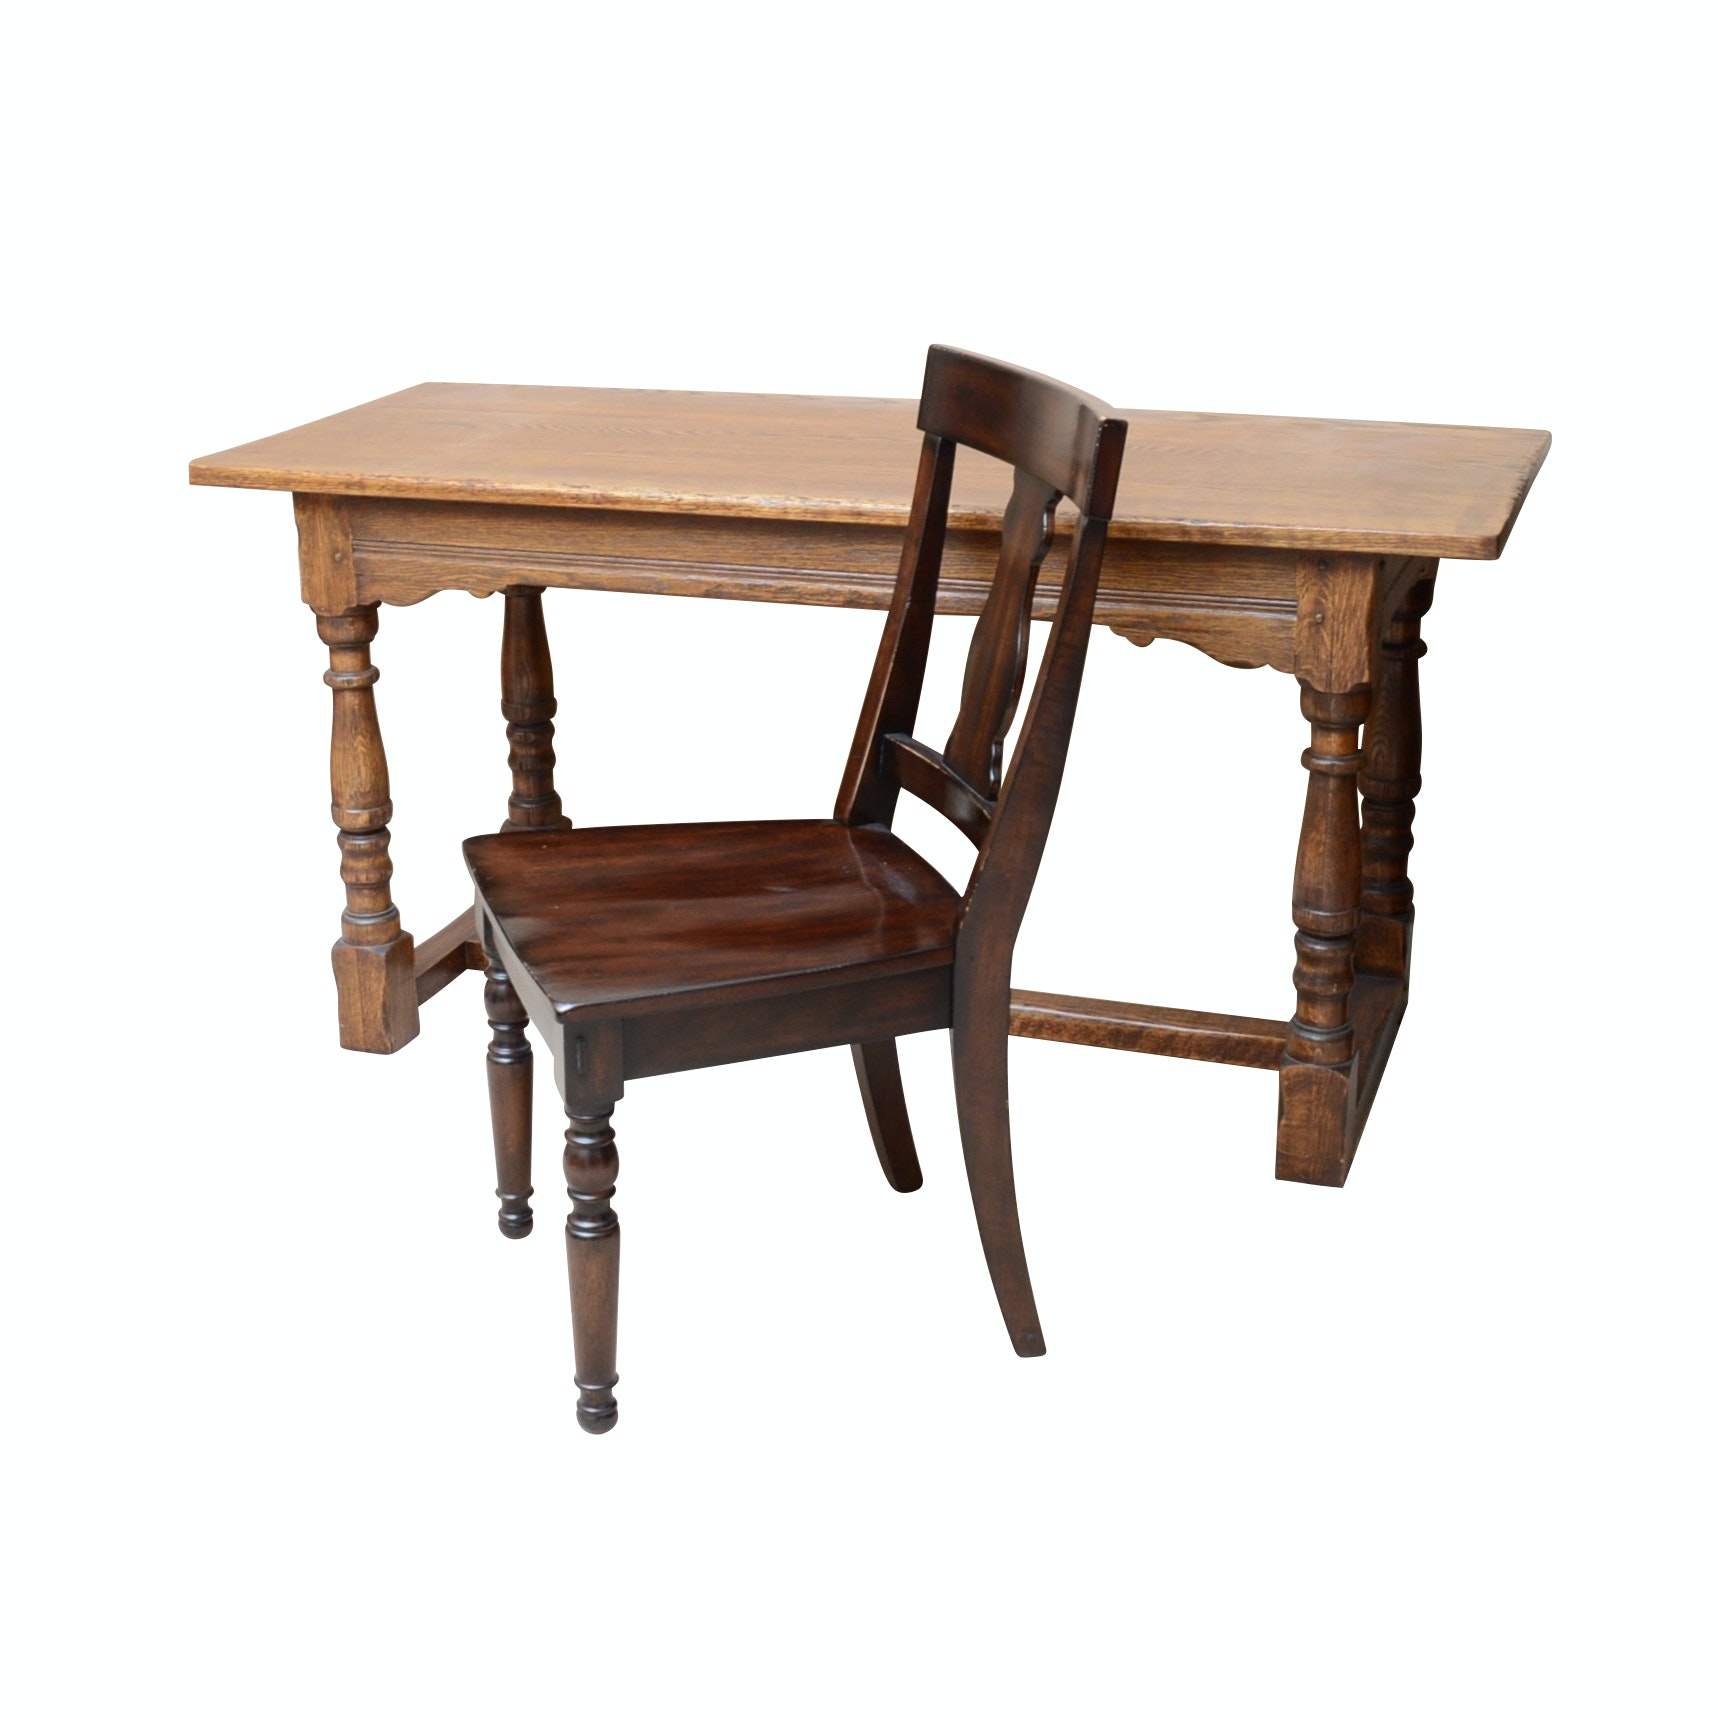 Oak Library Desk with Wooden Chair